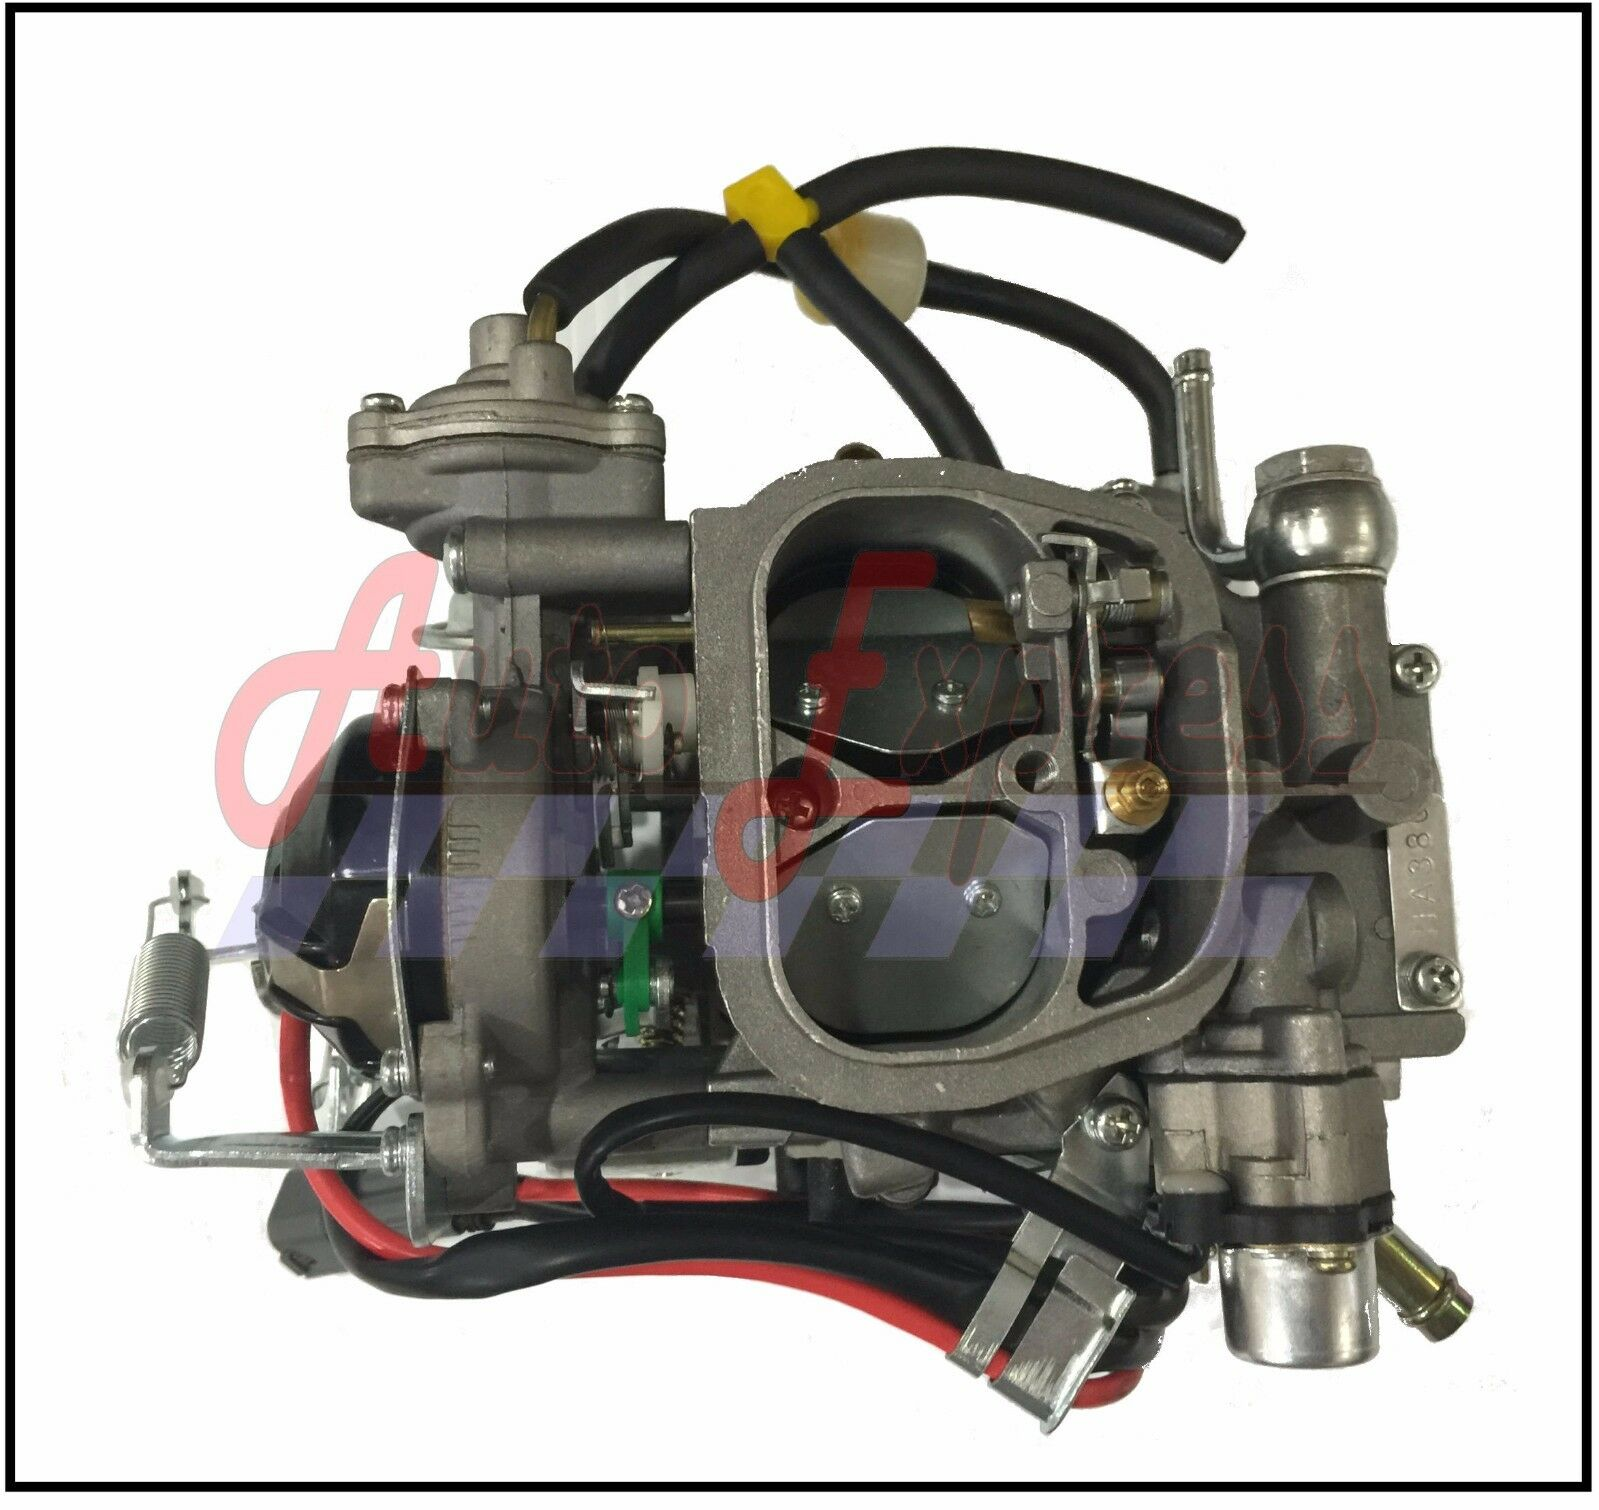 hight resolution of carburetor fits toyota 22r carburetor style engines replace carb 21100 35520 auto express automotive